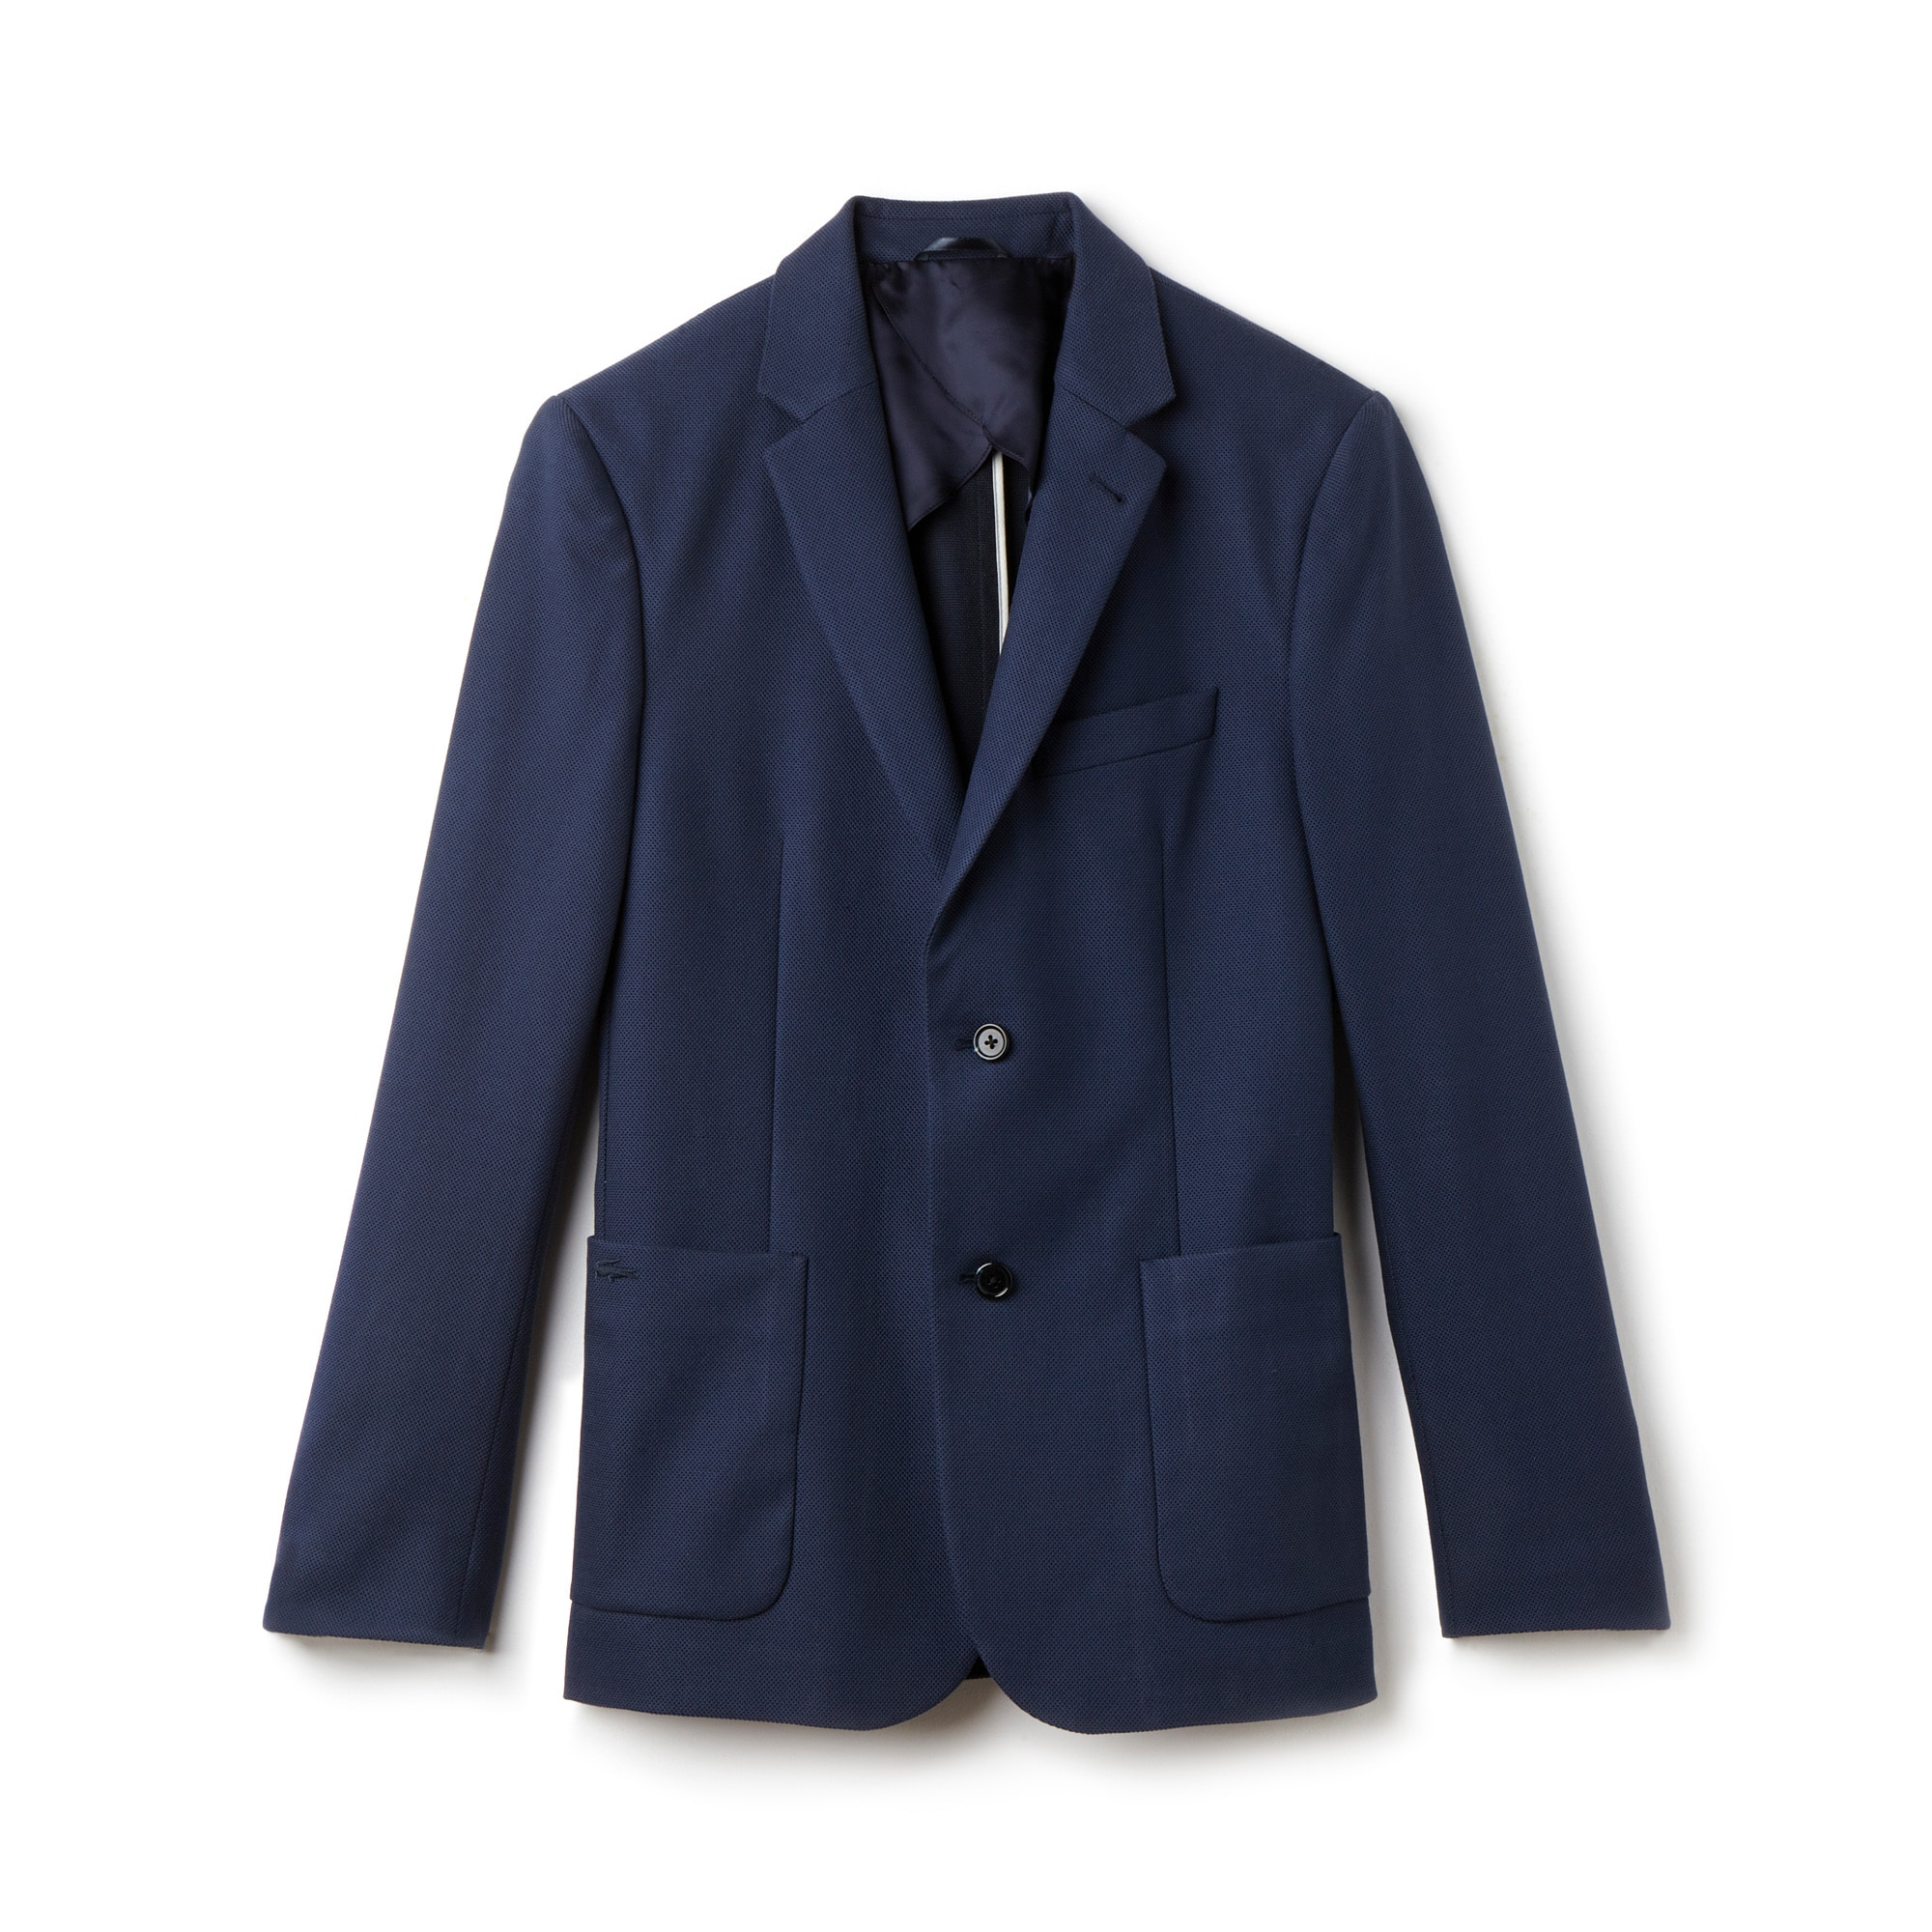 Men's 2-Button Cotton Blend Piqué Suit Jacket